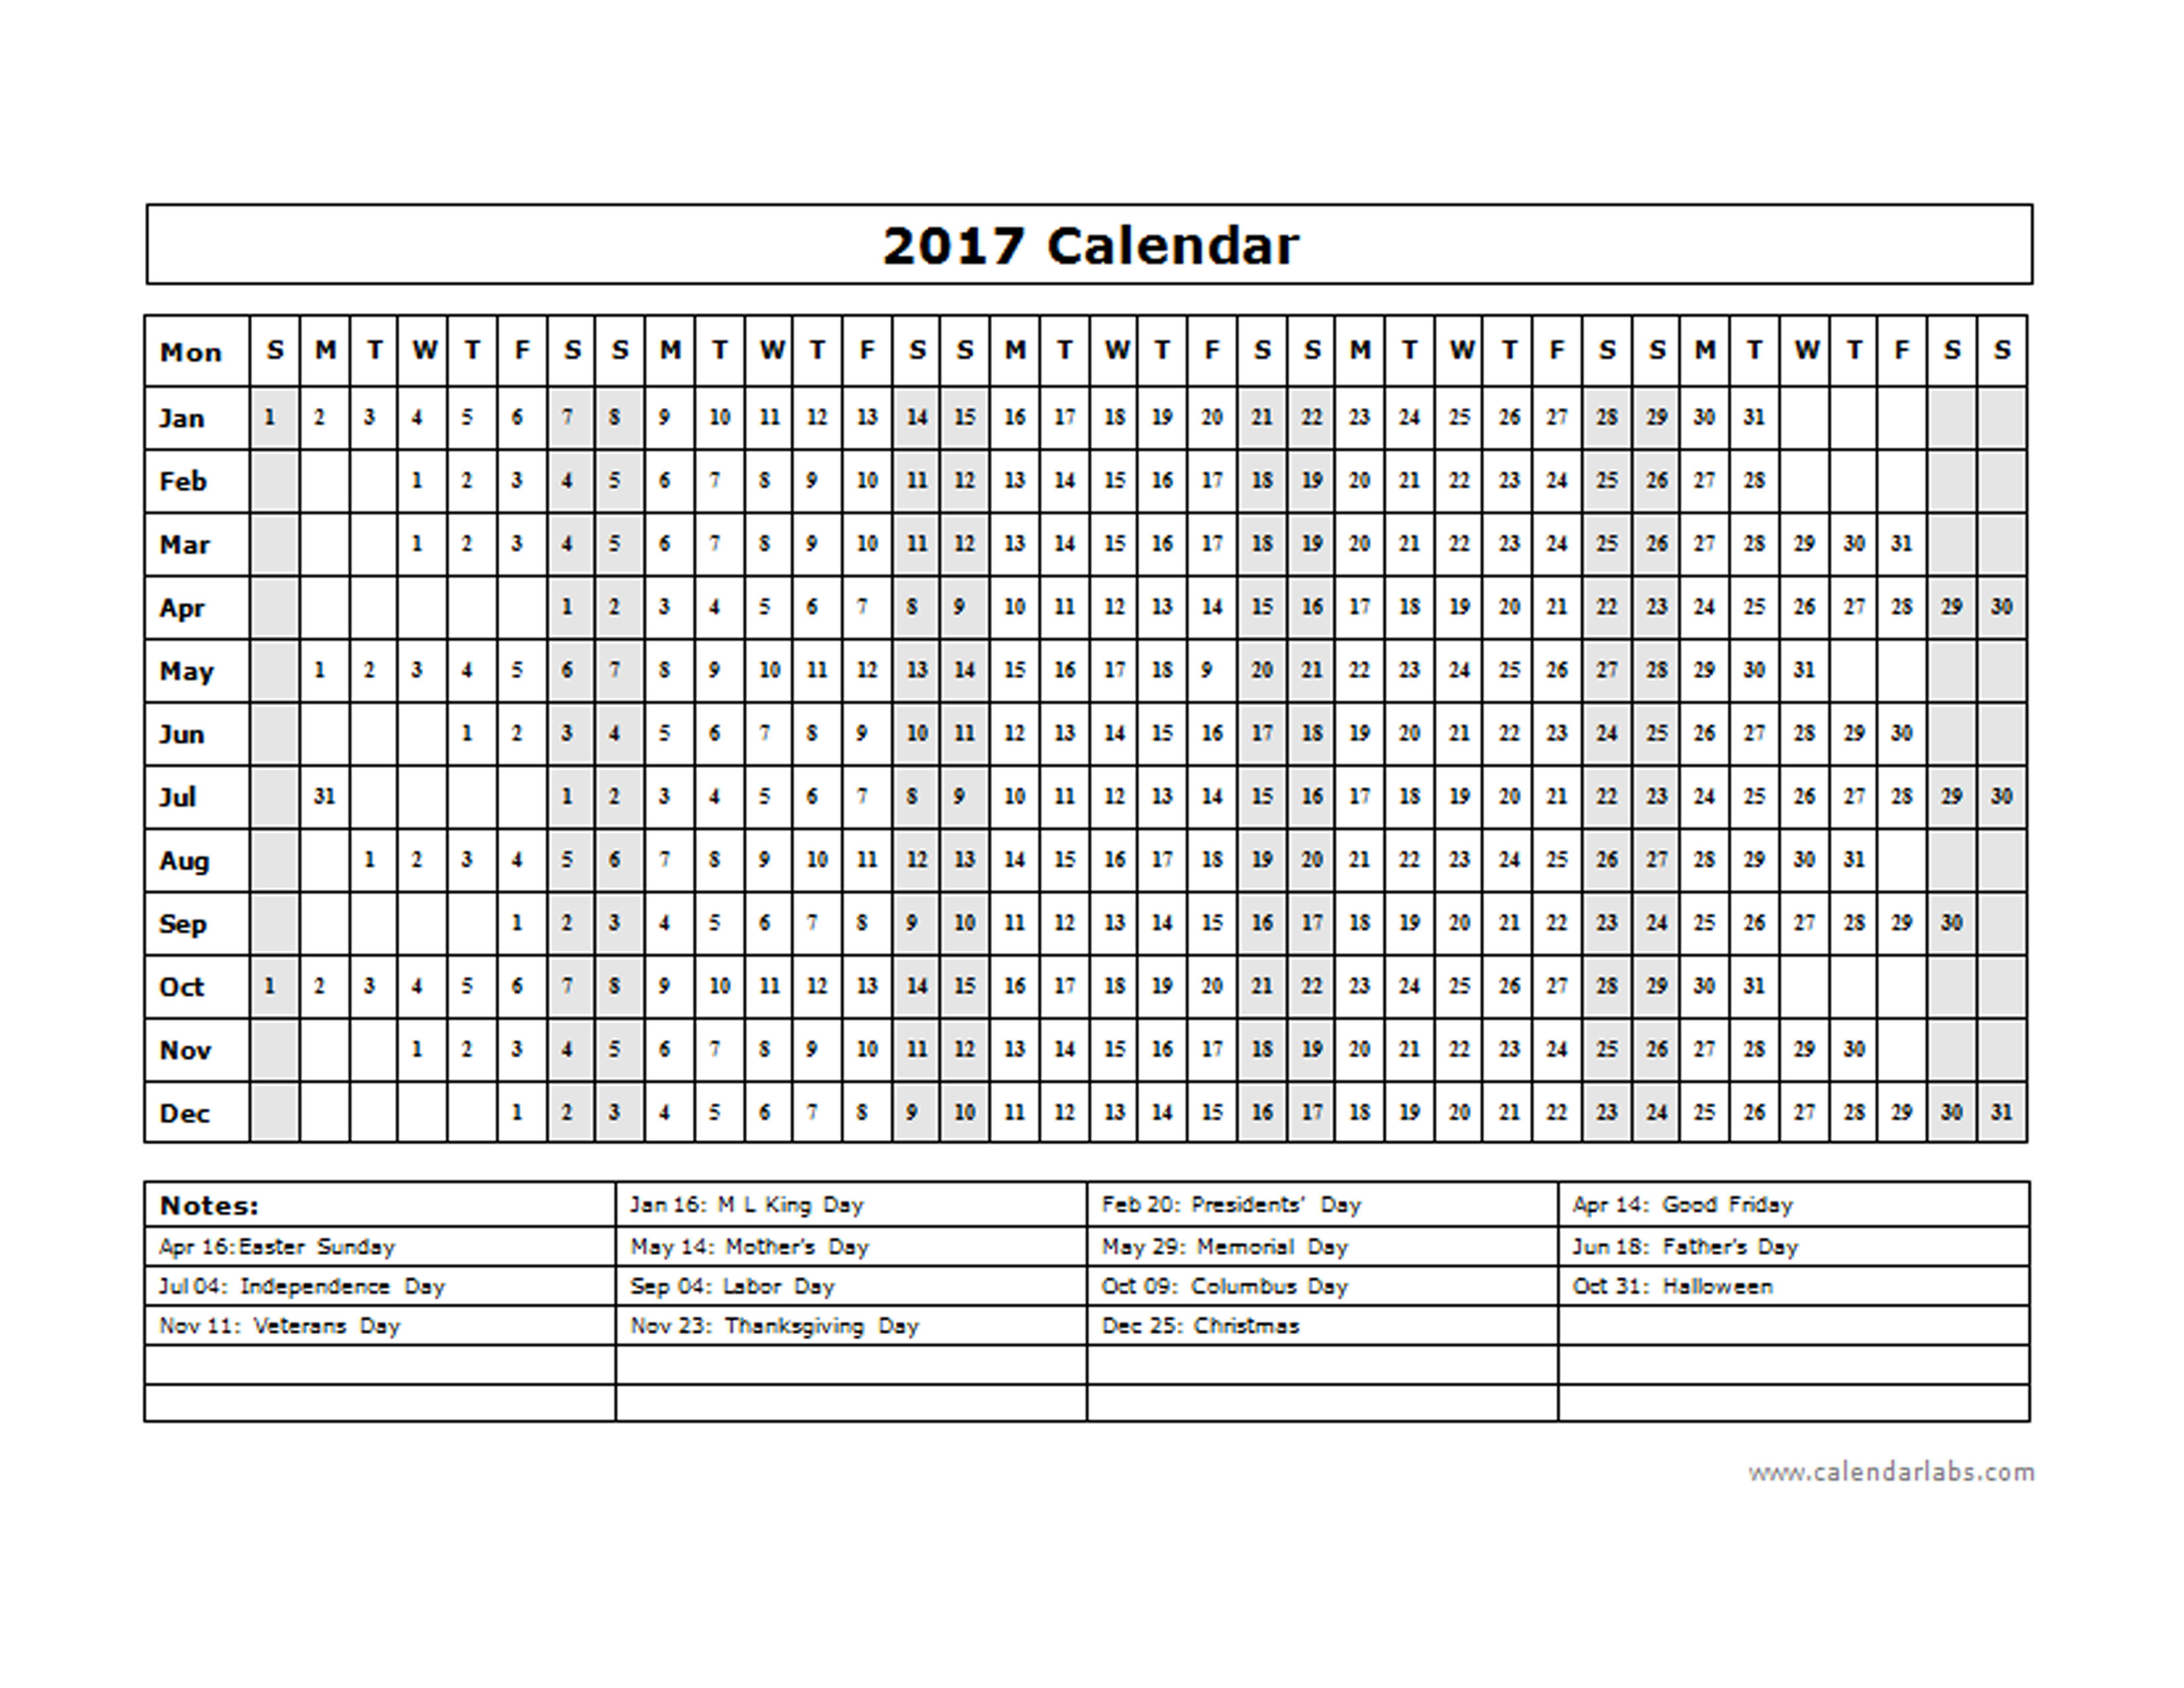 2017 Calendar Template Year at a glance - Free Printable ...